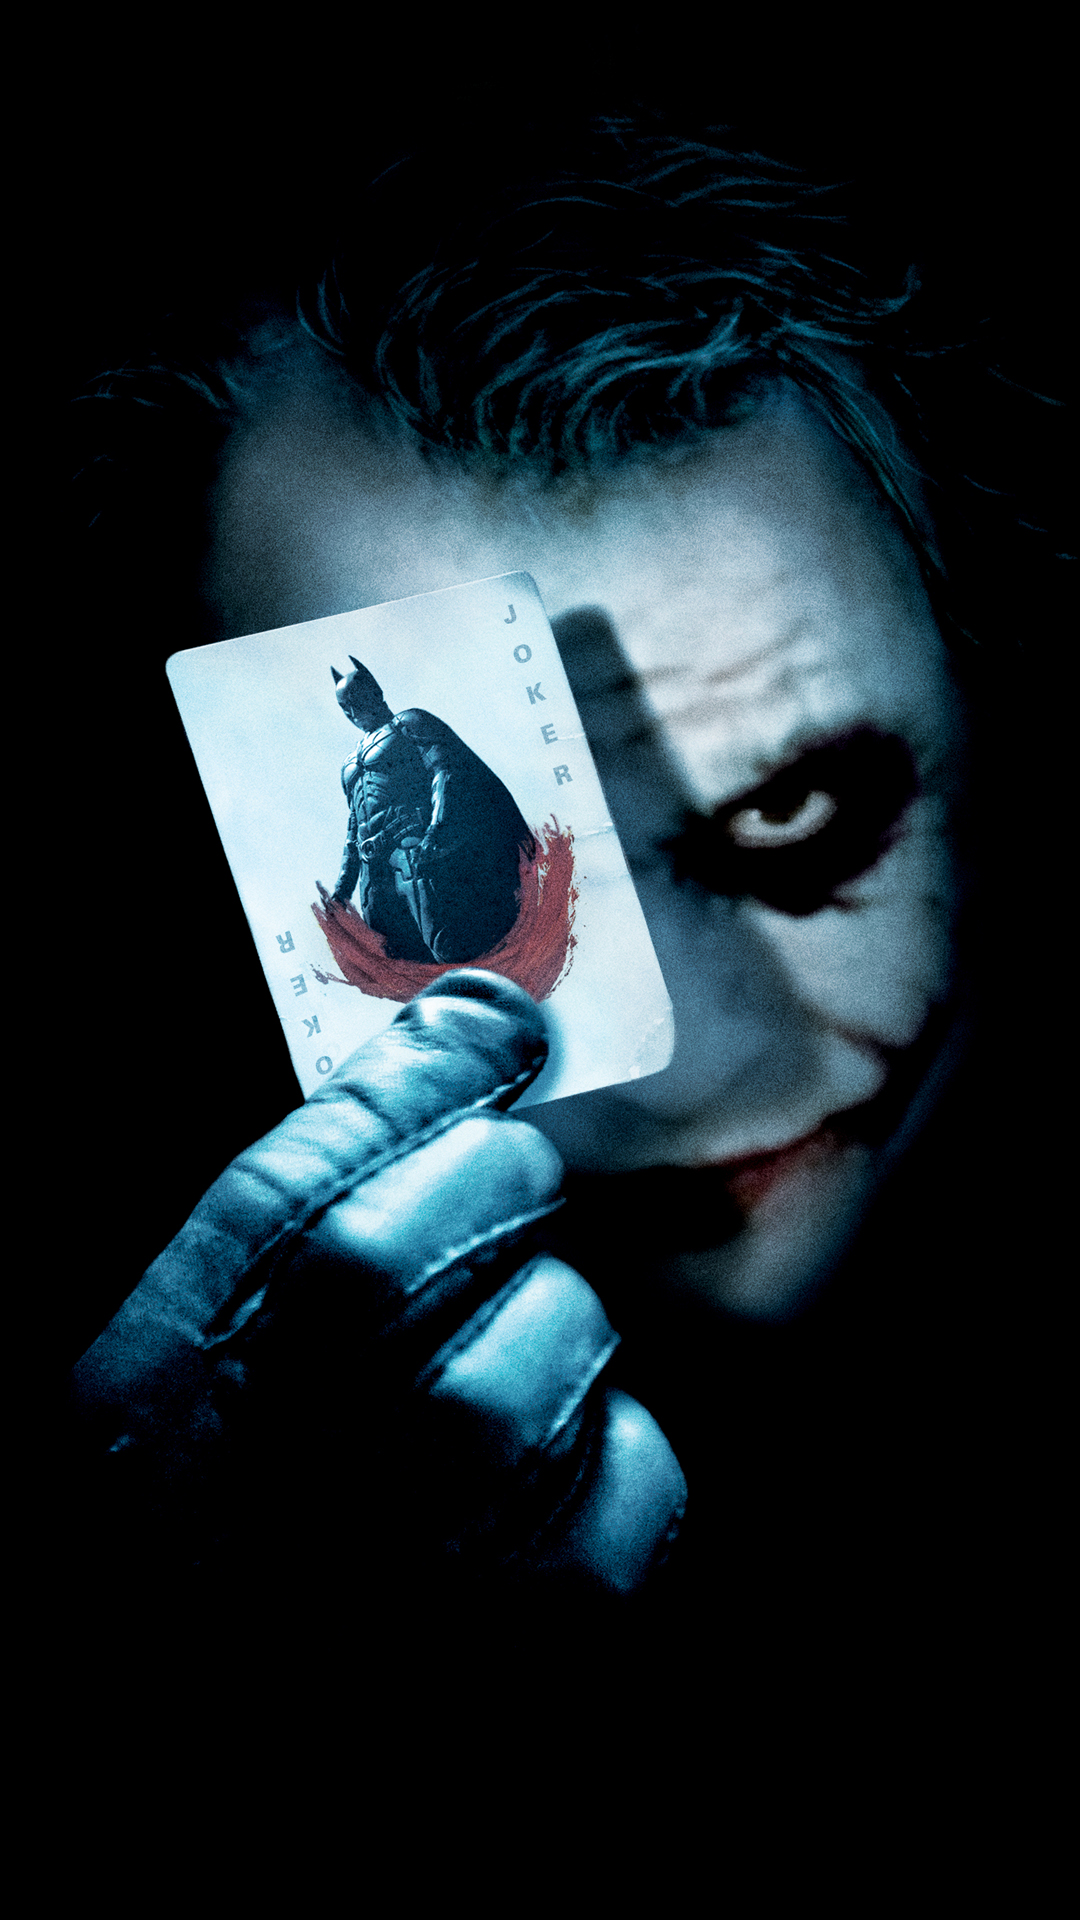 Joker Best Htc One Wallpapers Free And Easy To Download